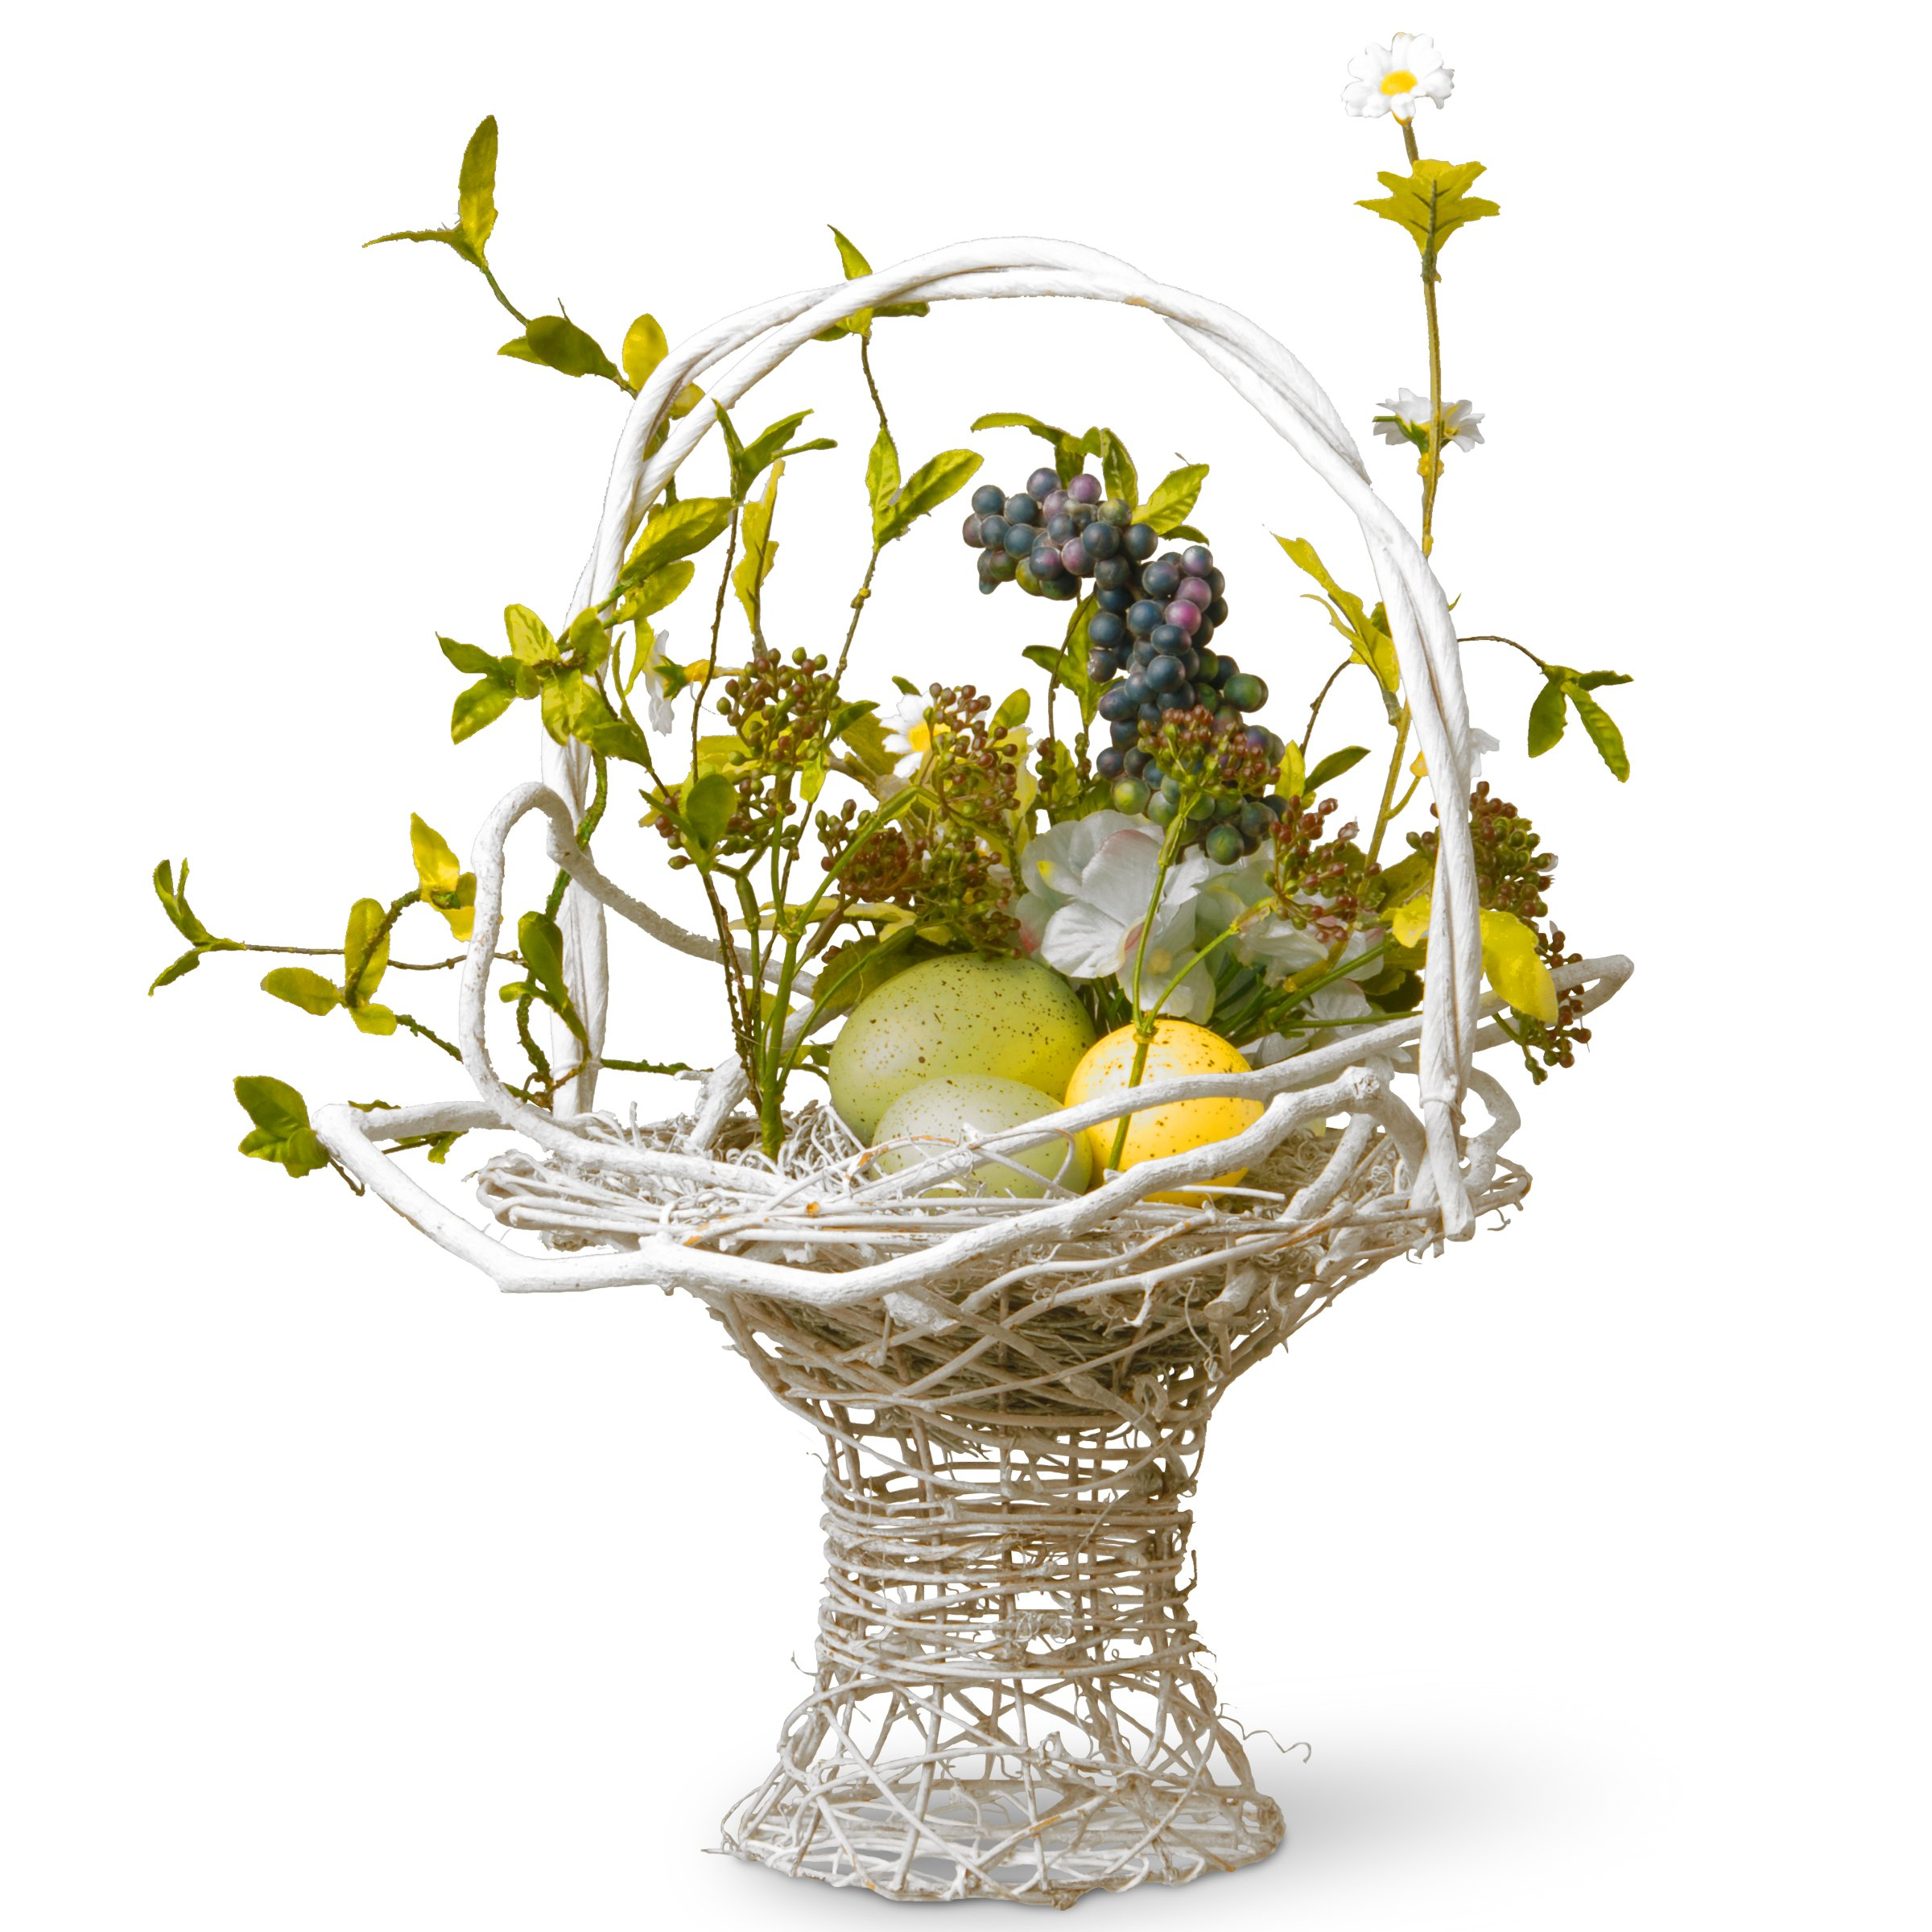 National Tree 14 Inch Weaved Wood Basket with Hydrangeas and Pastel Easter Eggs (RAE-BC030107-1)